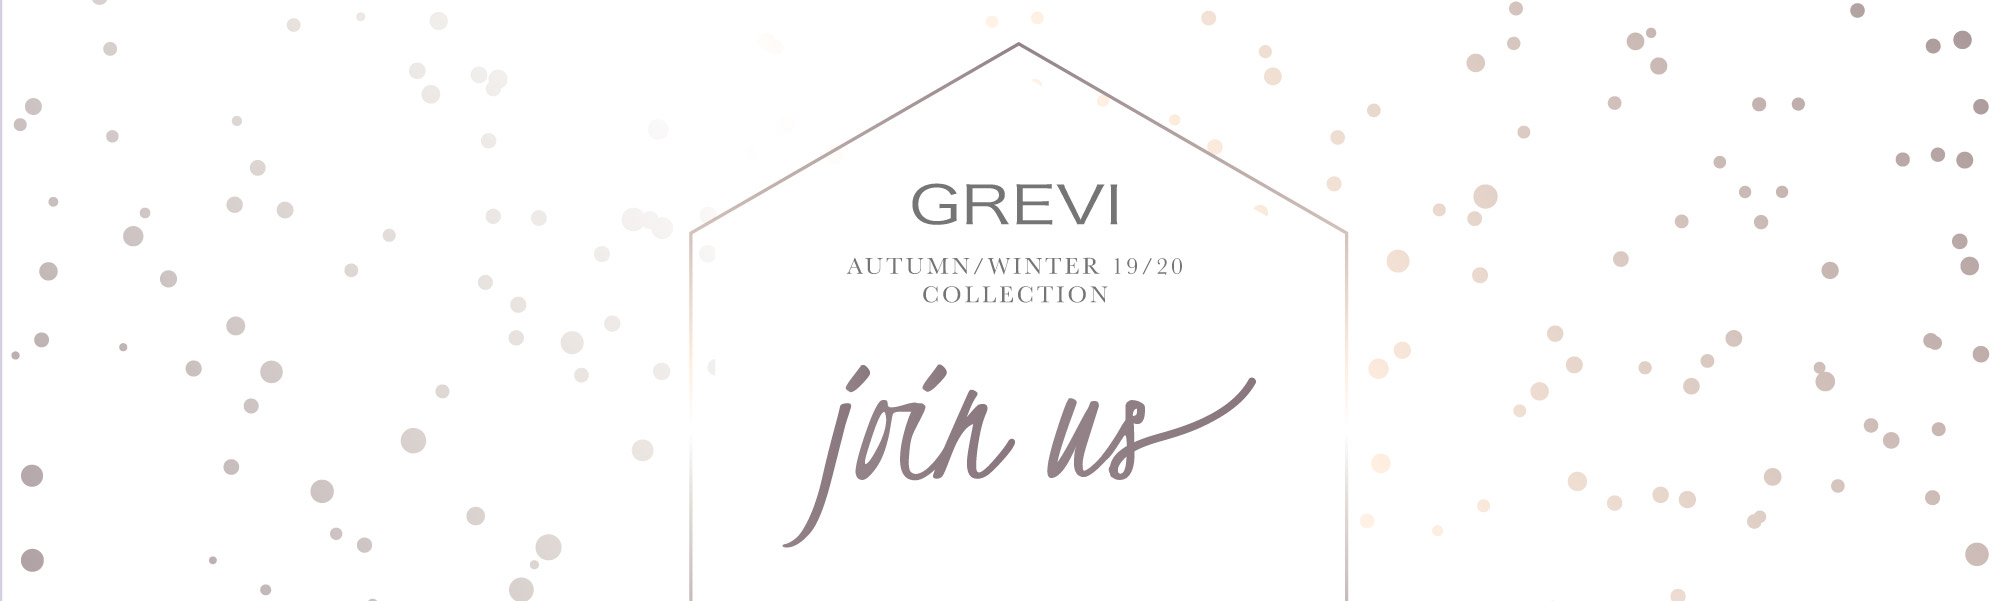 GREVI AUTUMN WINTER COLLECTION FAIRS